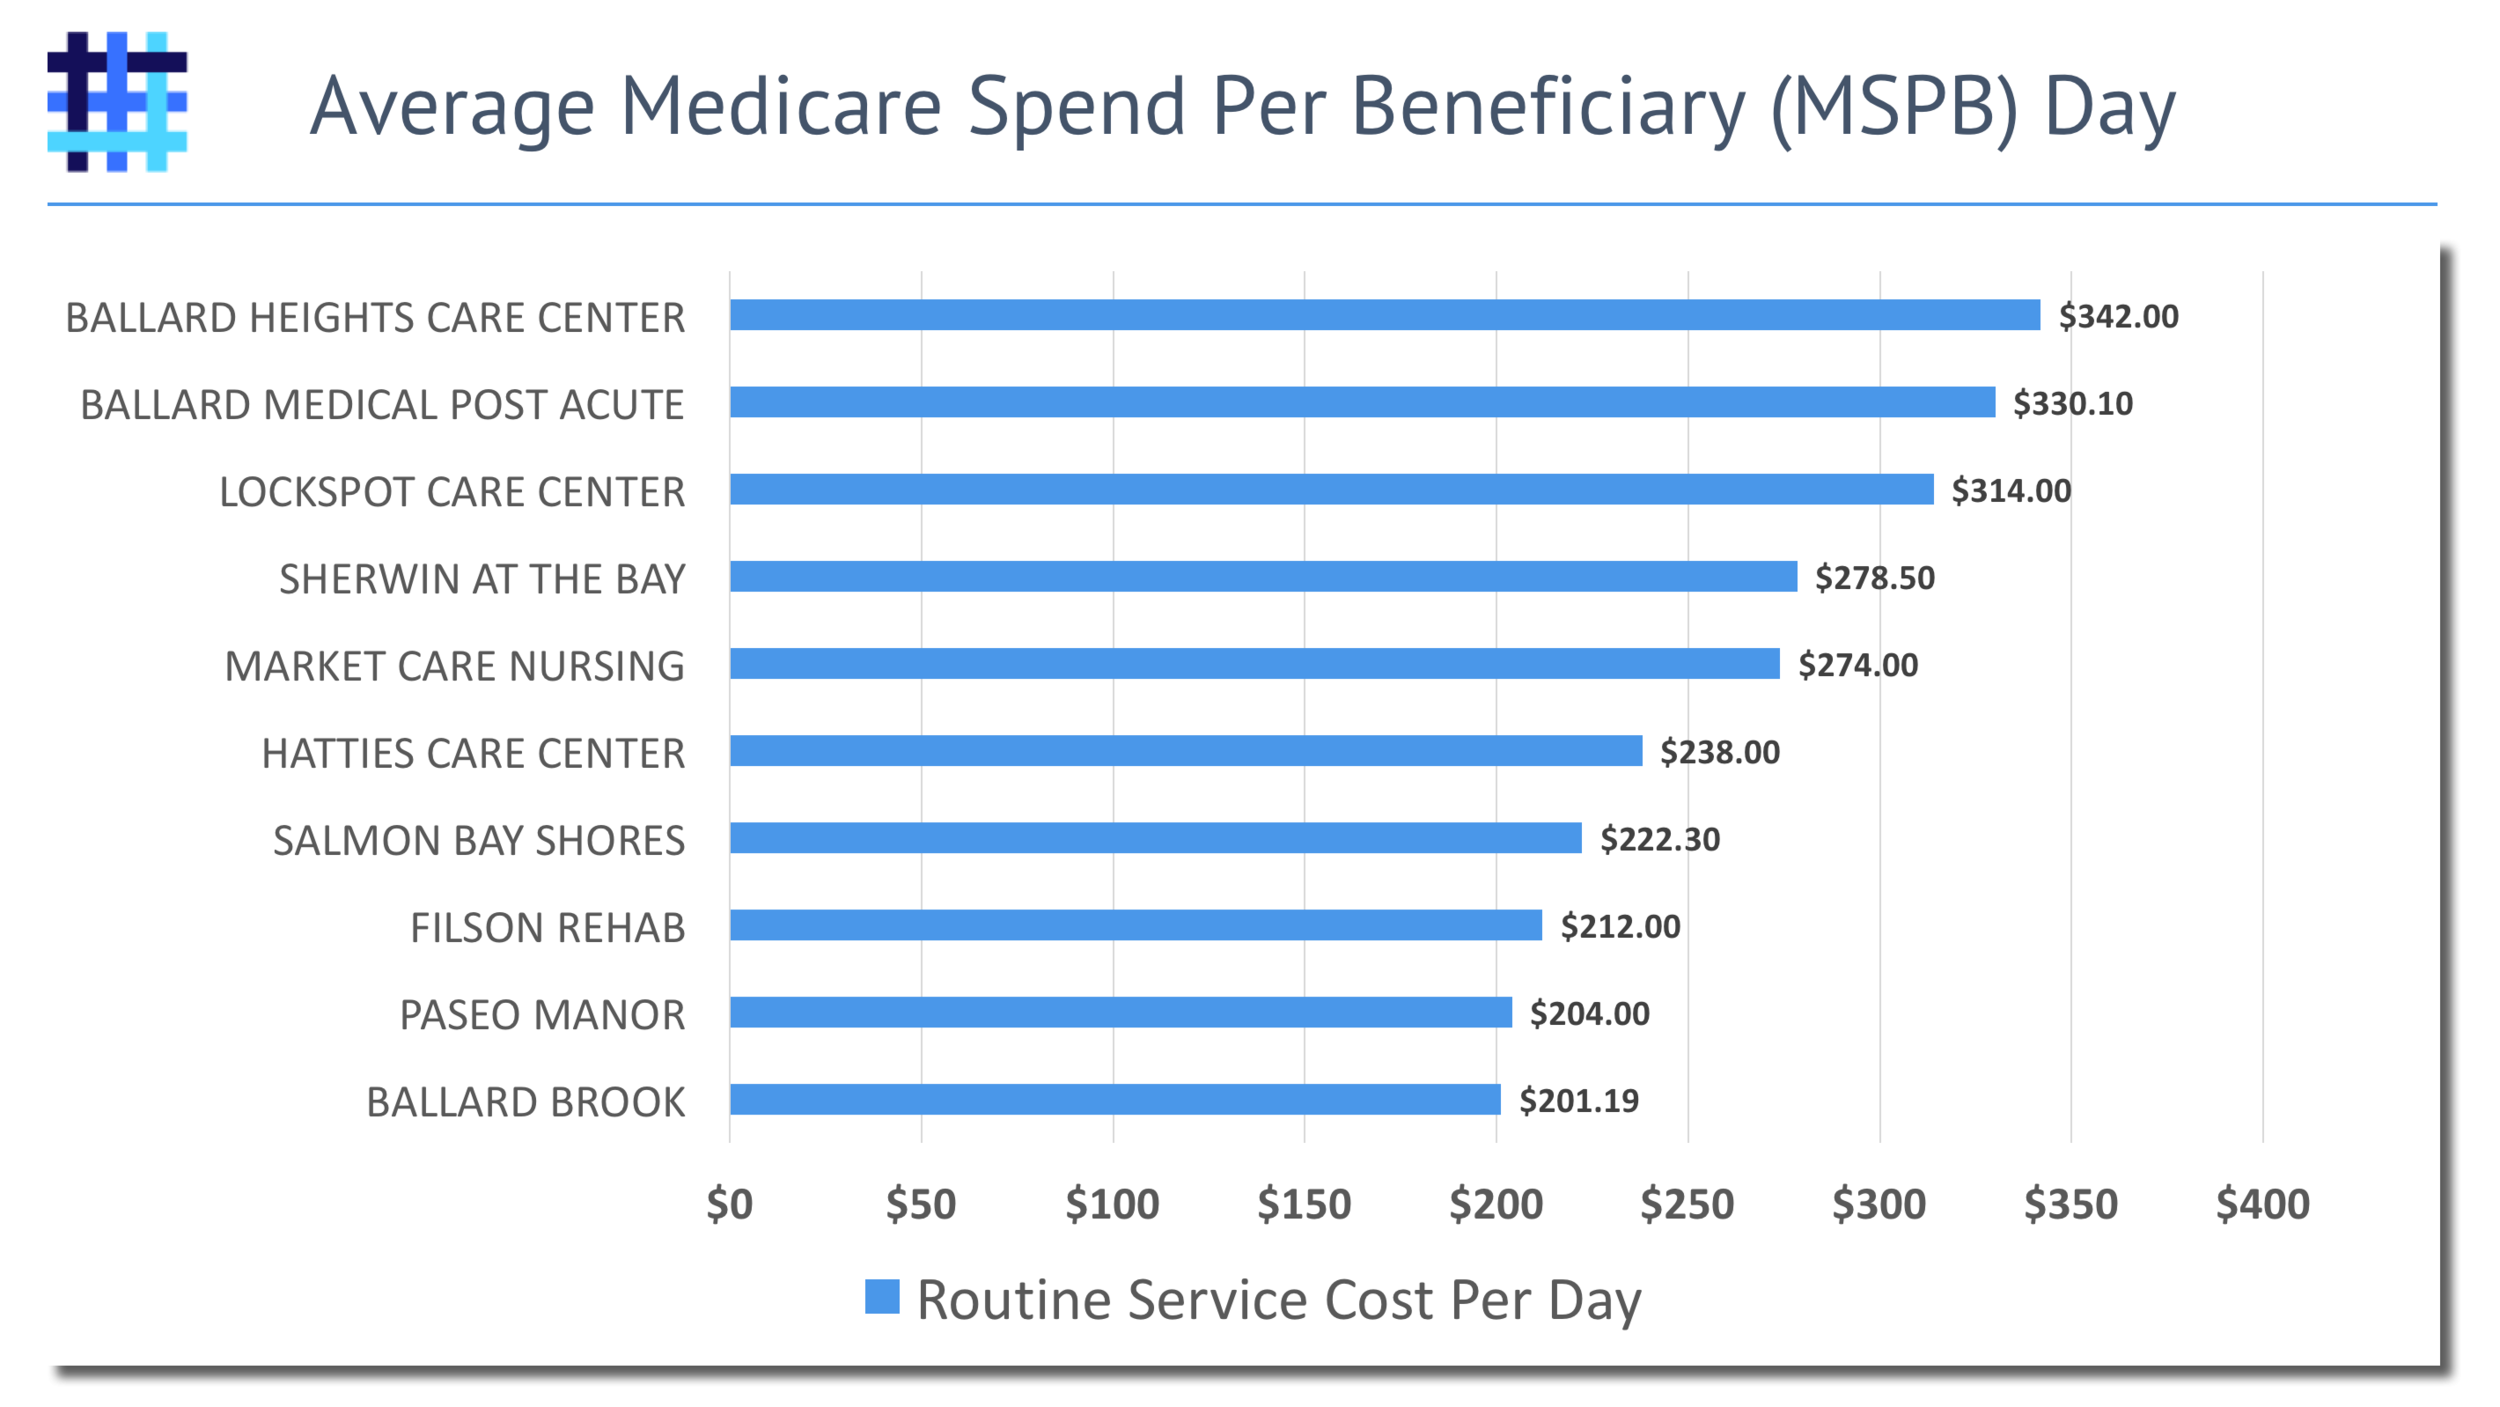 Average Nursing Home and Skilled Nursing Facility Spend Per Medicare Beneficiary (MSPB)